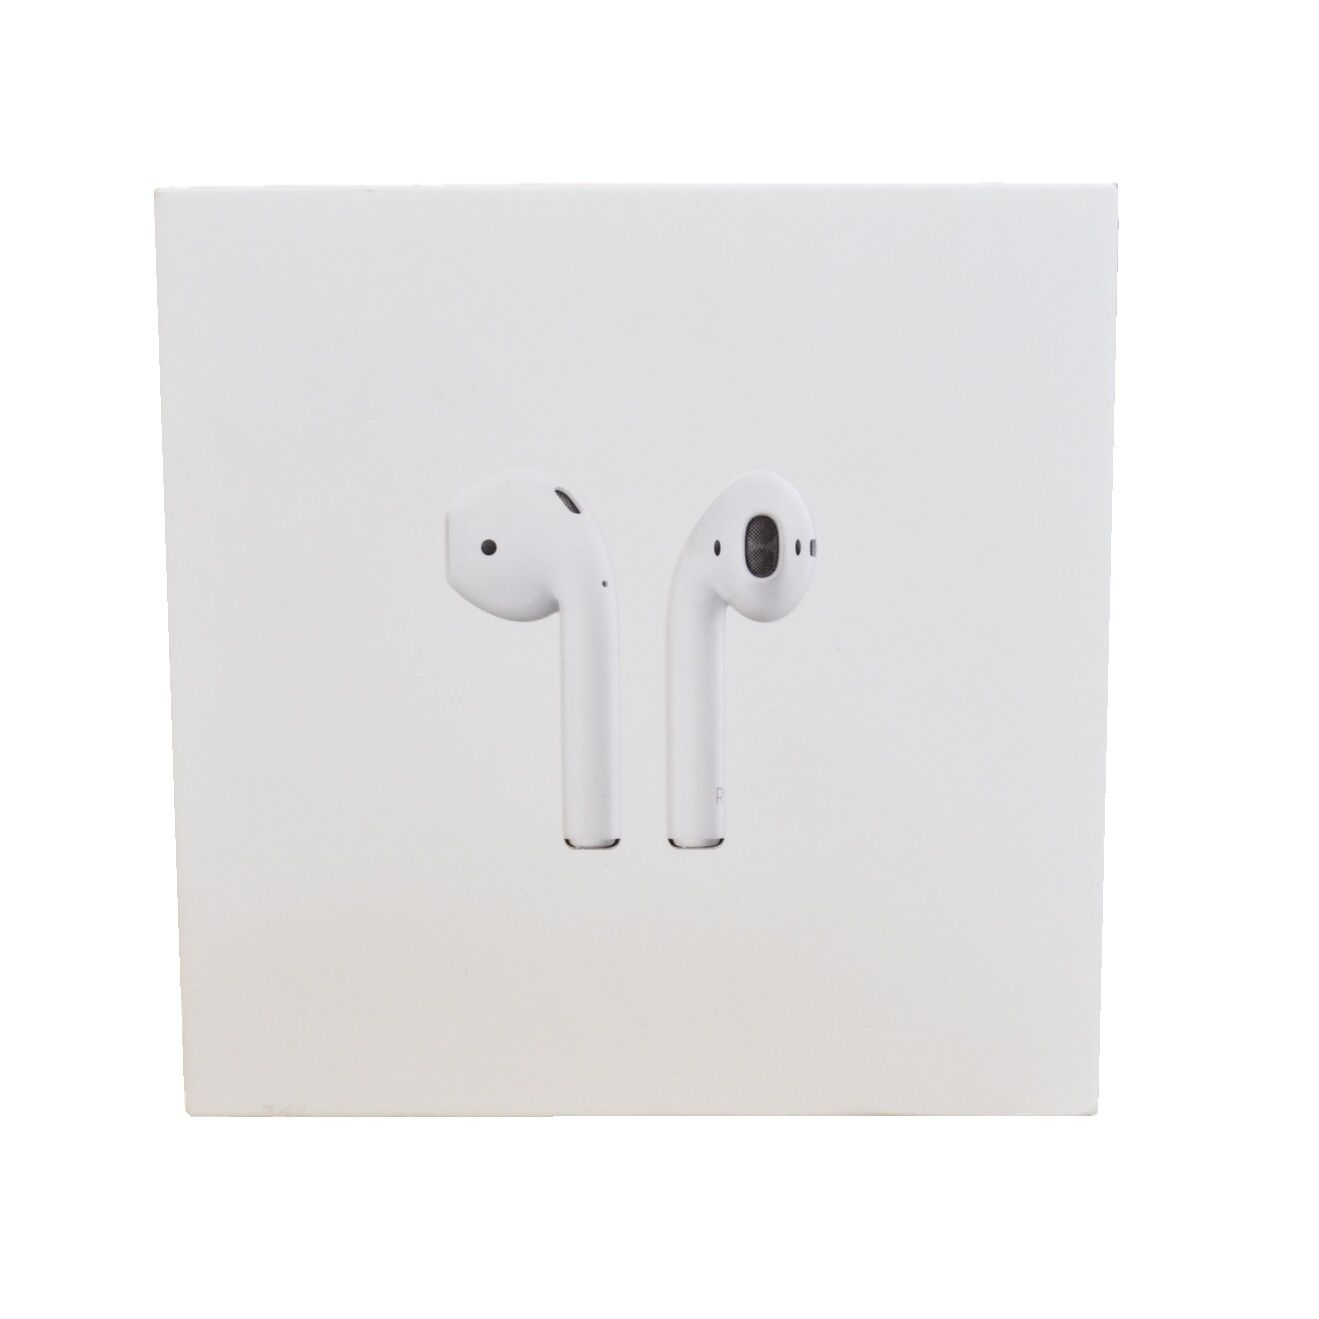 Apple AirPods White Genuine In-Ear Wireless Bluetooth Headsets w/ Case MMEF2AM/A